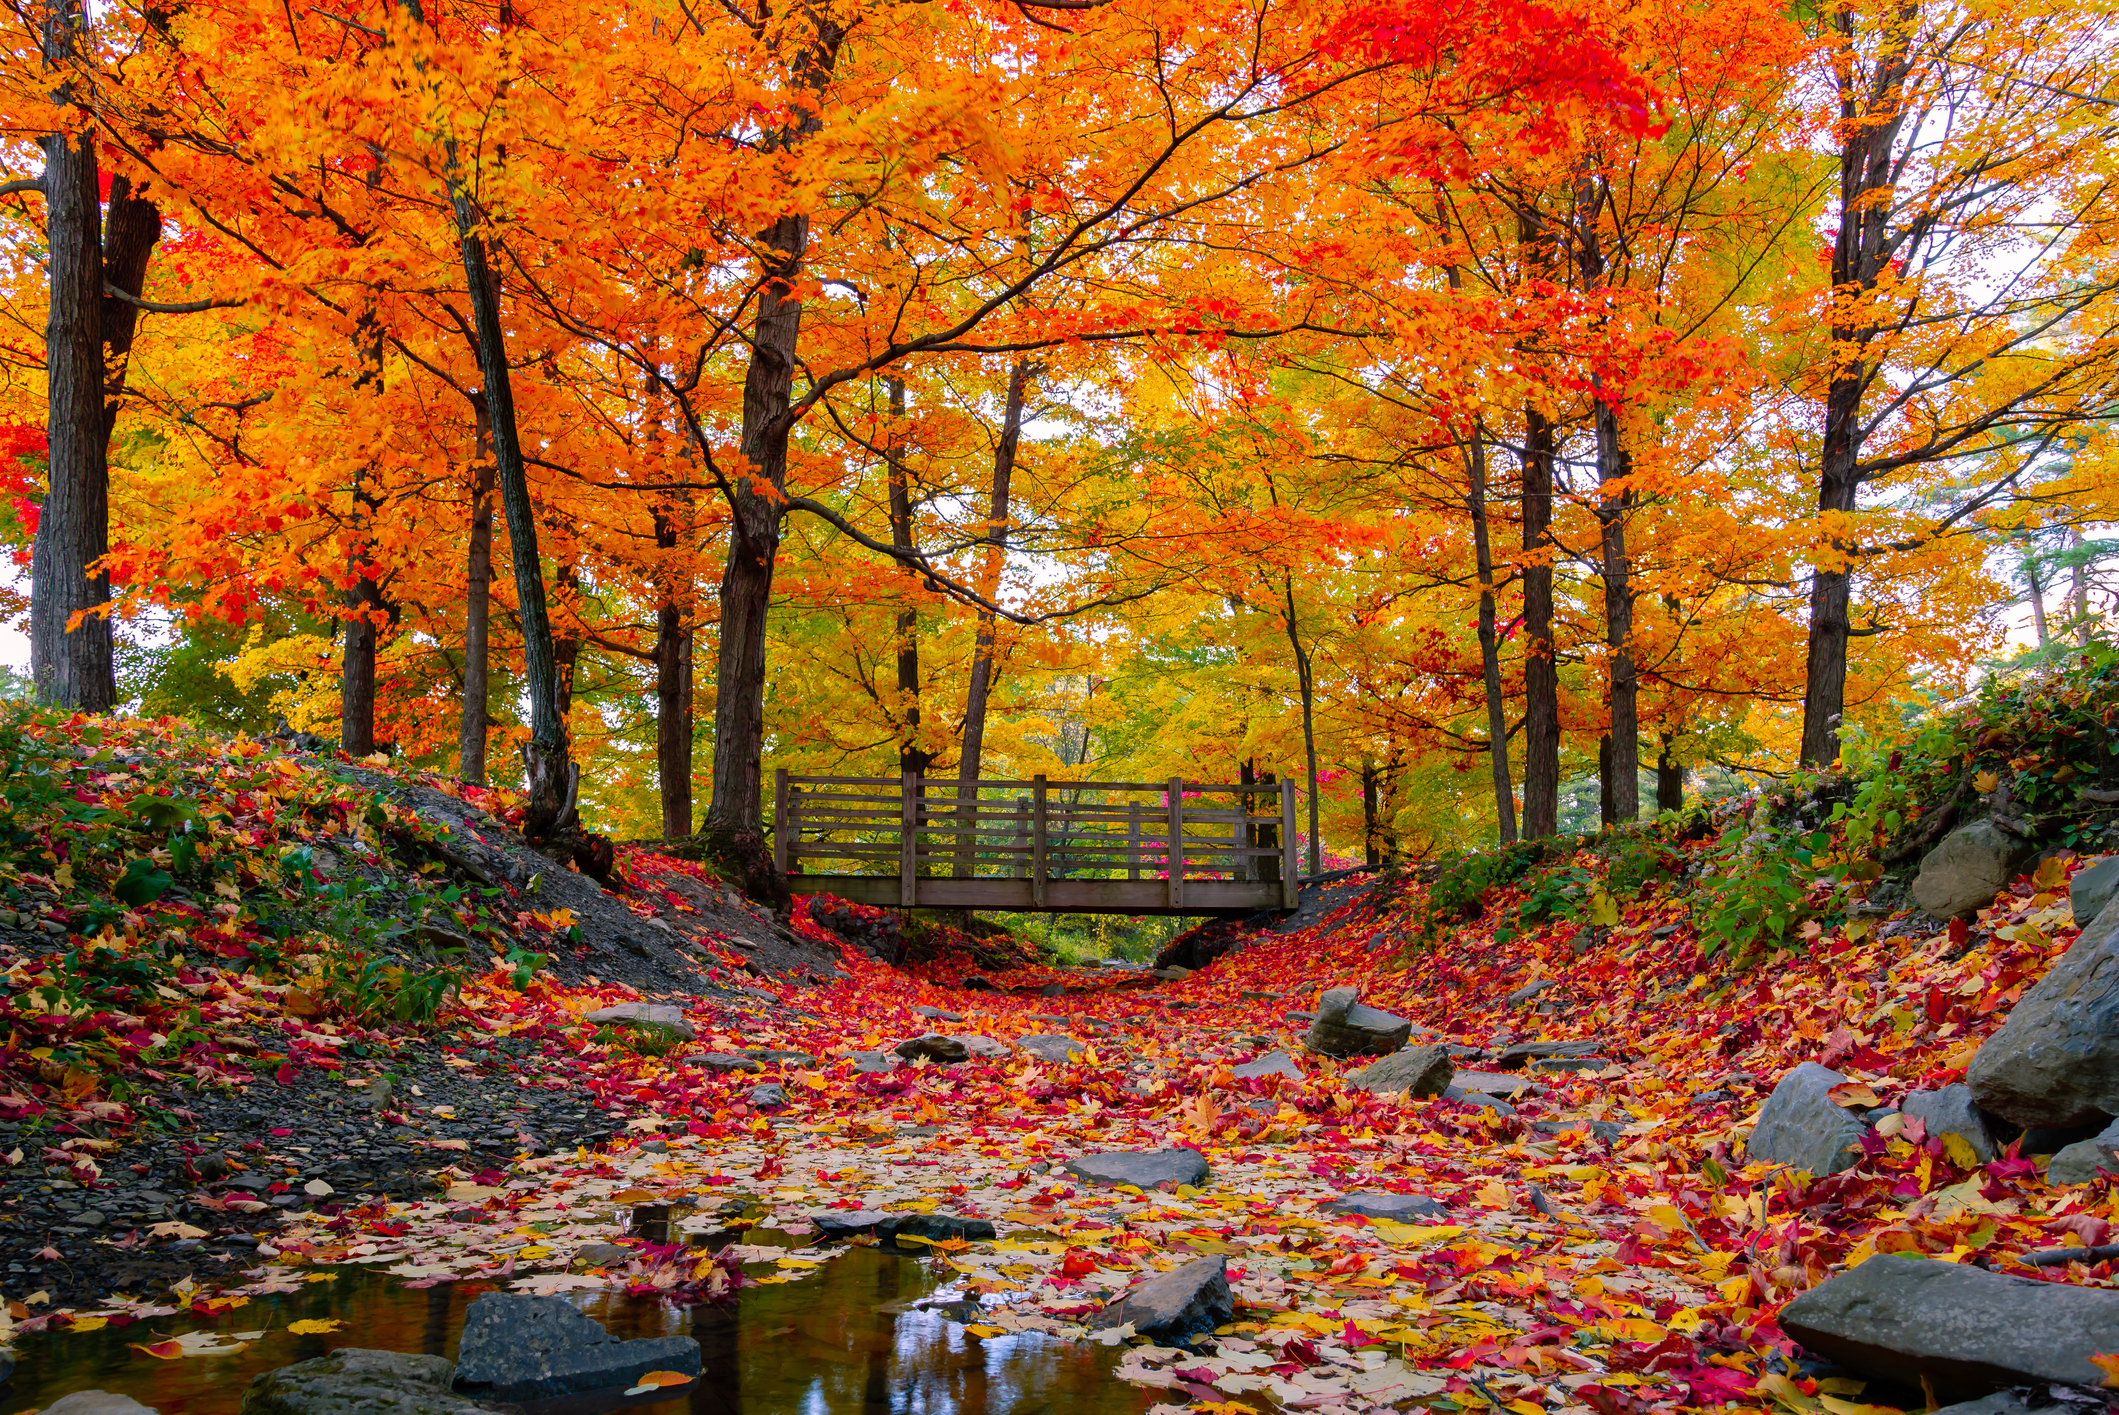 Beautiful autumn leaves scenario.